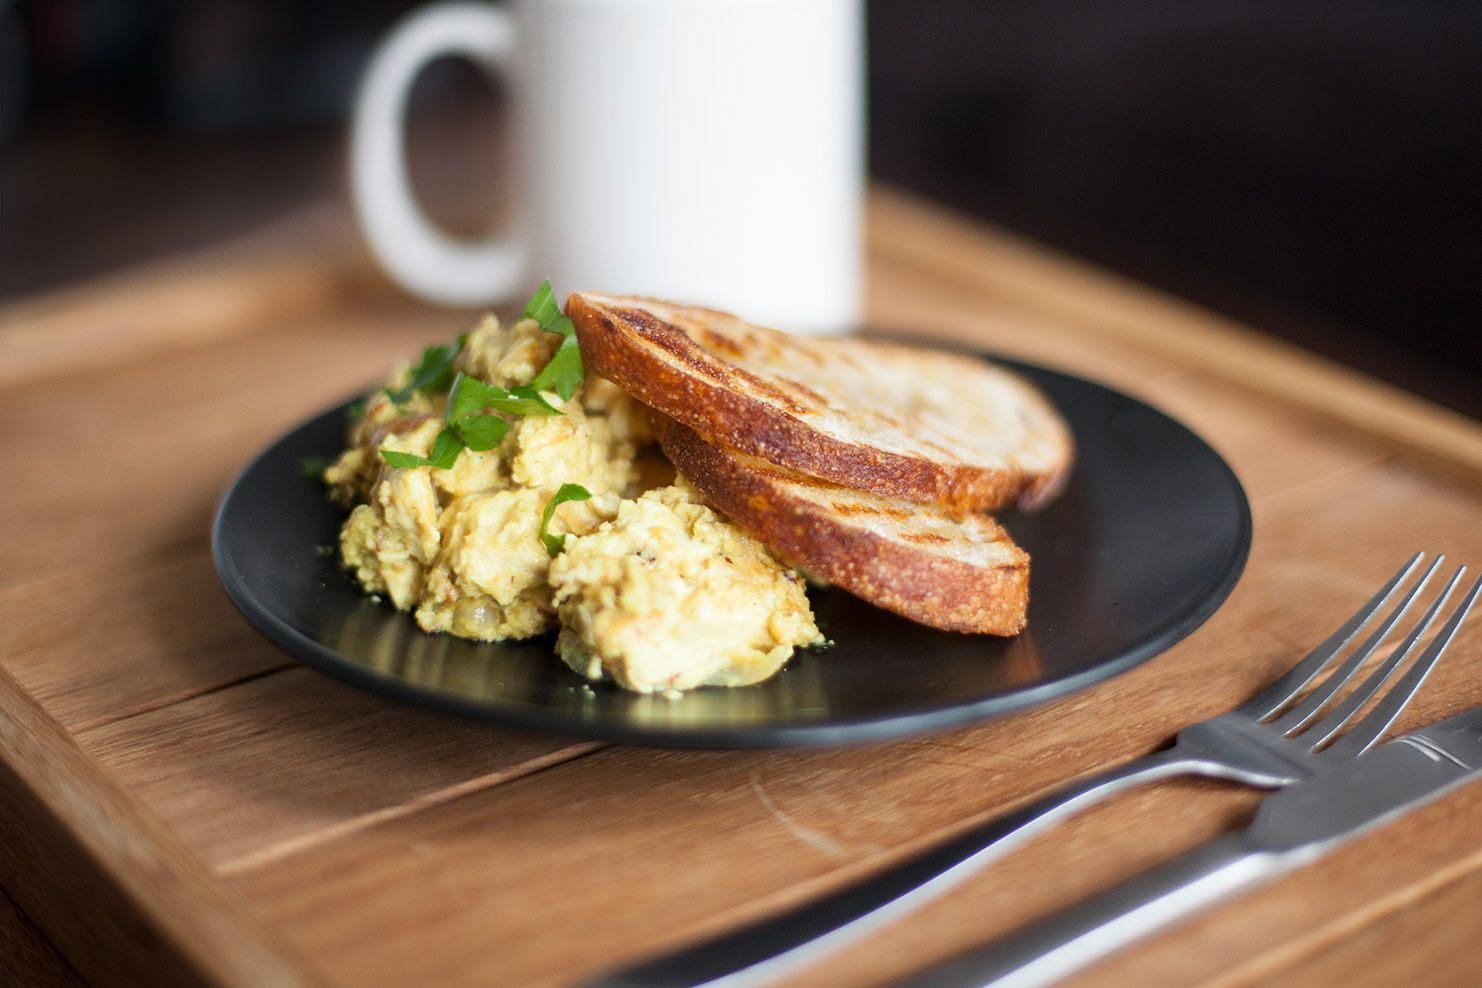 This scrambled tofu made with cashew nuts is creamy and delicious, making it a perfect weekend breakfast.